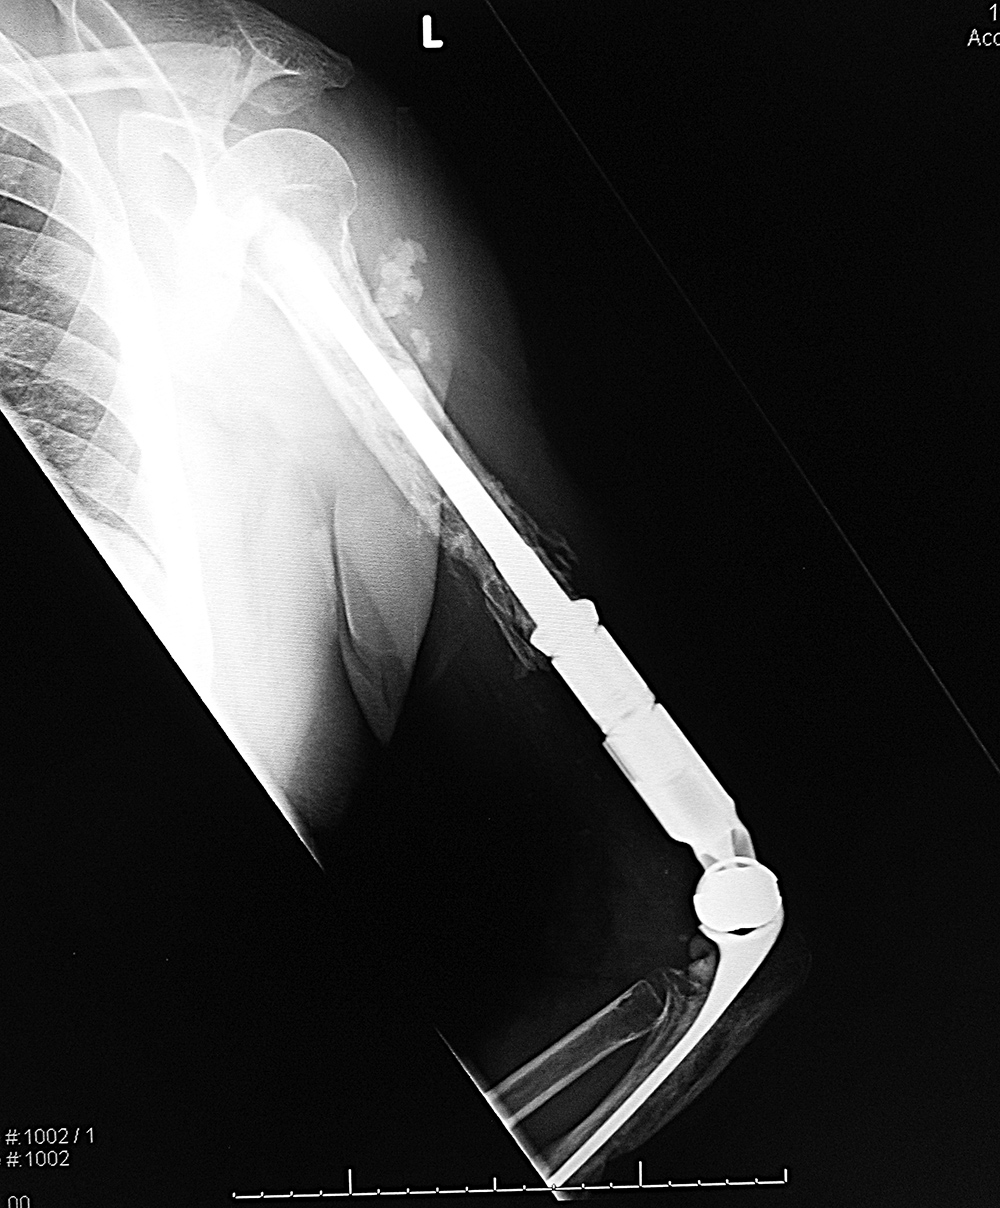 prothesis loosening Doctors give unbiased, helpful information on indications, contra-indications, benefits, and complications: dr hettinger on hip replacement loosening symptoms: implant loosening causes pain, especially with weight bearing the knee generally will make more lubricating fluid as well, causing swelling.